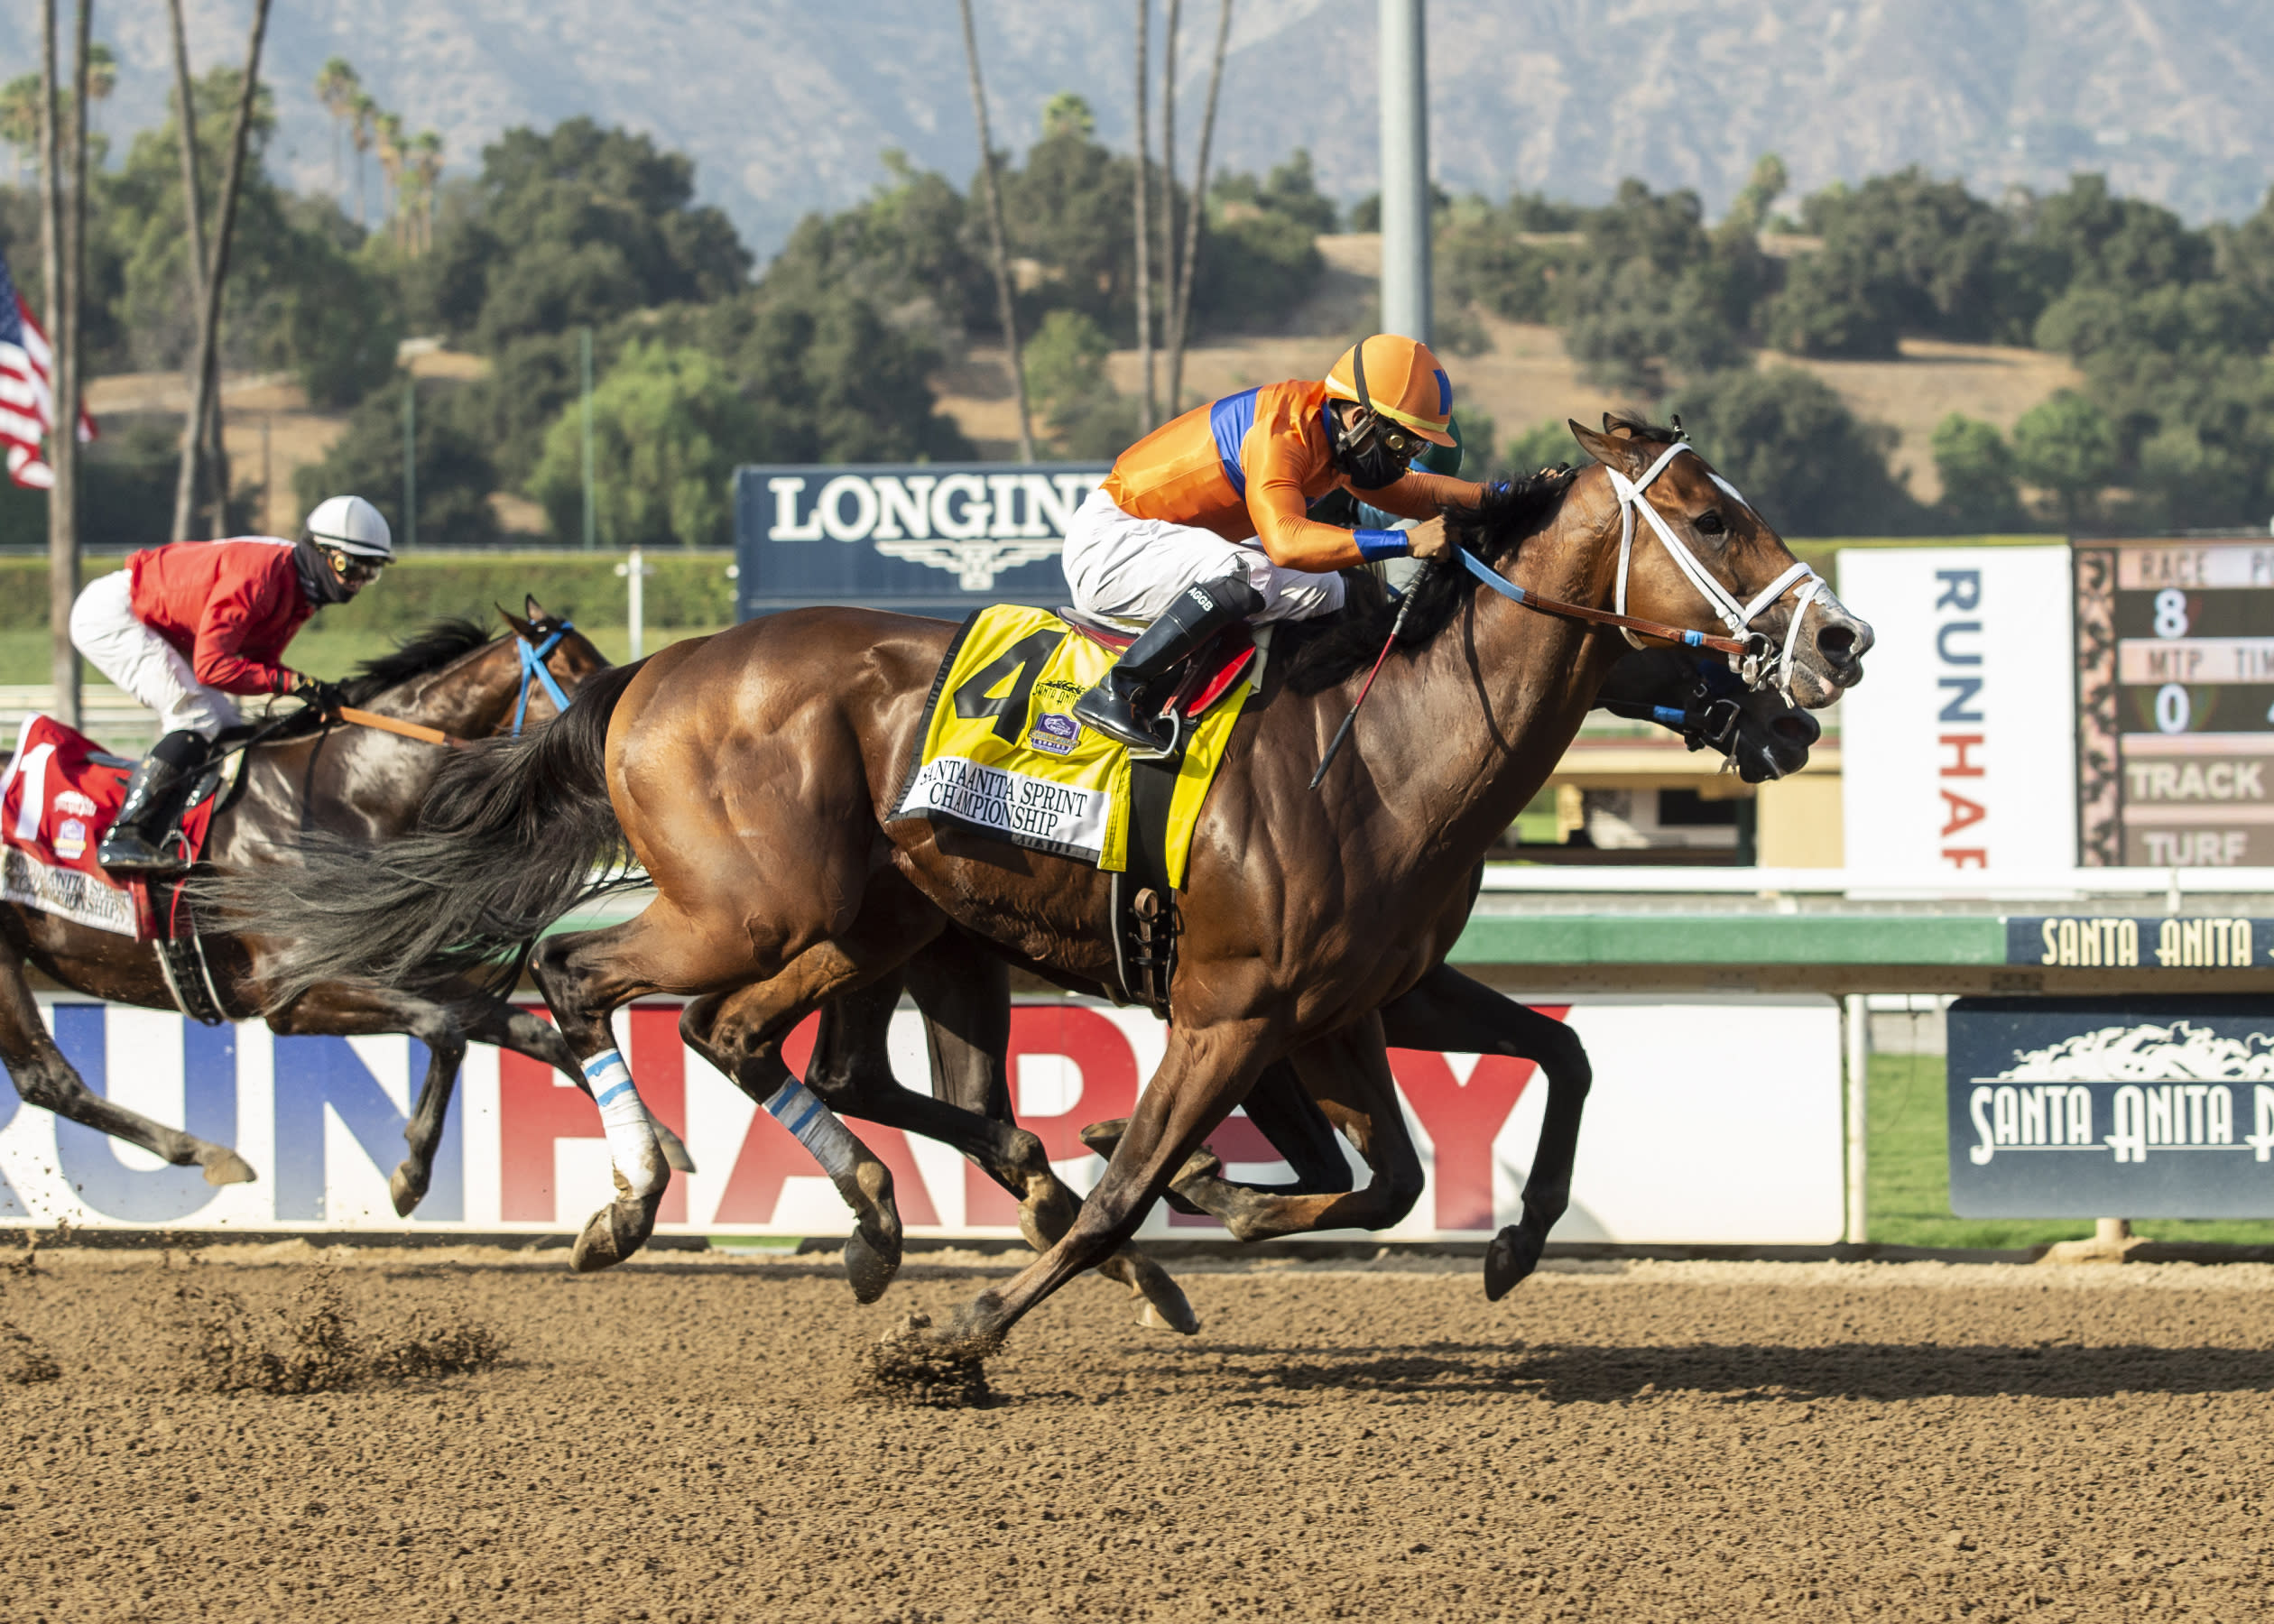 In a photo provided by Benoit Photo, C Z Rocket and jockey Luis Saez, outside, overpower Flagstaff (Victor Espinoza), inside, and Collusion Illusion (Flavien Prat), left, to win the Grade II, $200,000 Santa Anita Sprint Championship, Sunday, Sept. 27, 2020 at Santa Anita Park in Arcadia Calif.(Benoit Photo via AP)